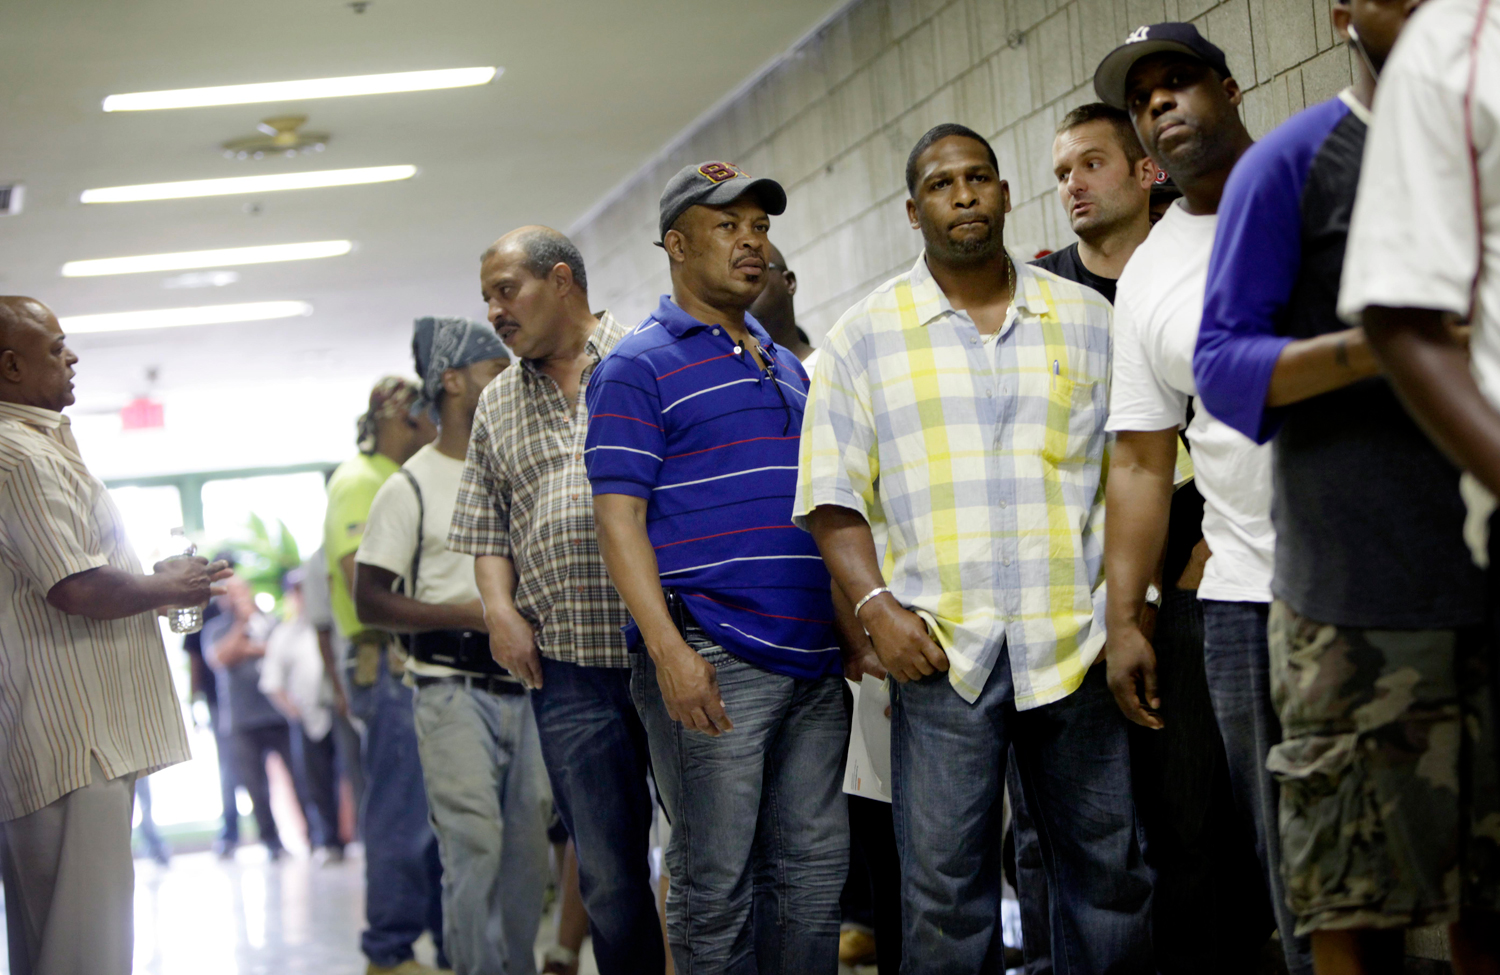 Men-wait-in-line-to-a-apply-for-jobs